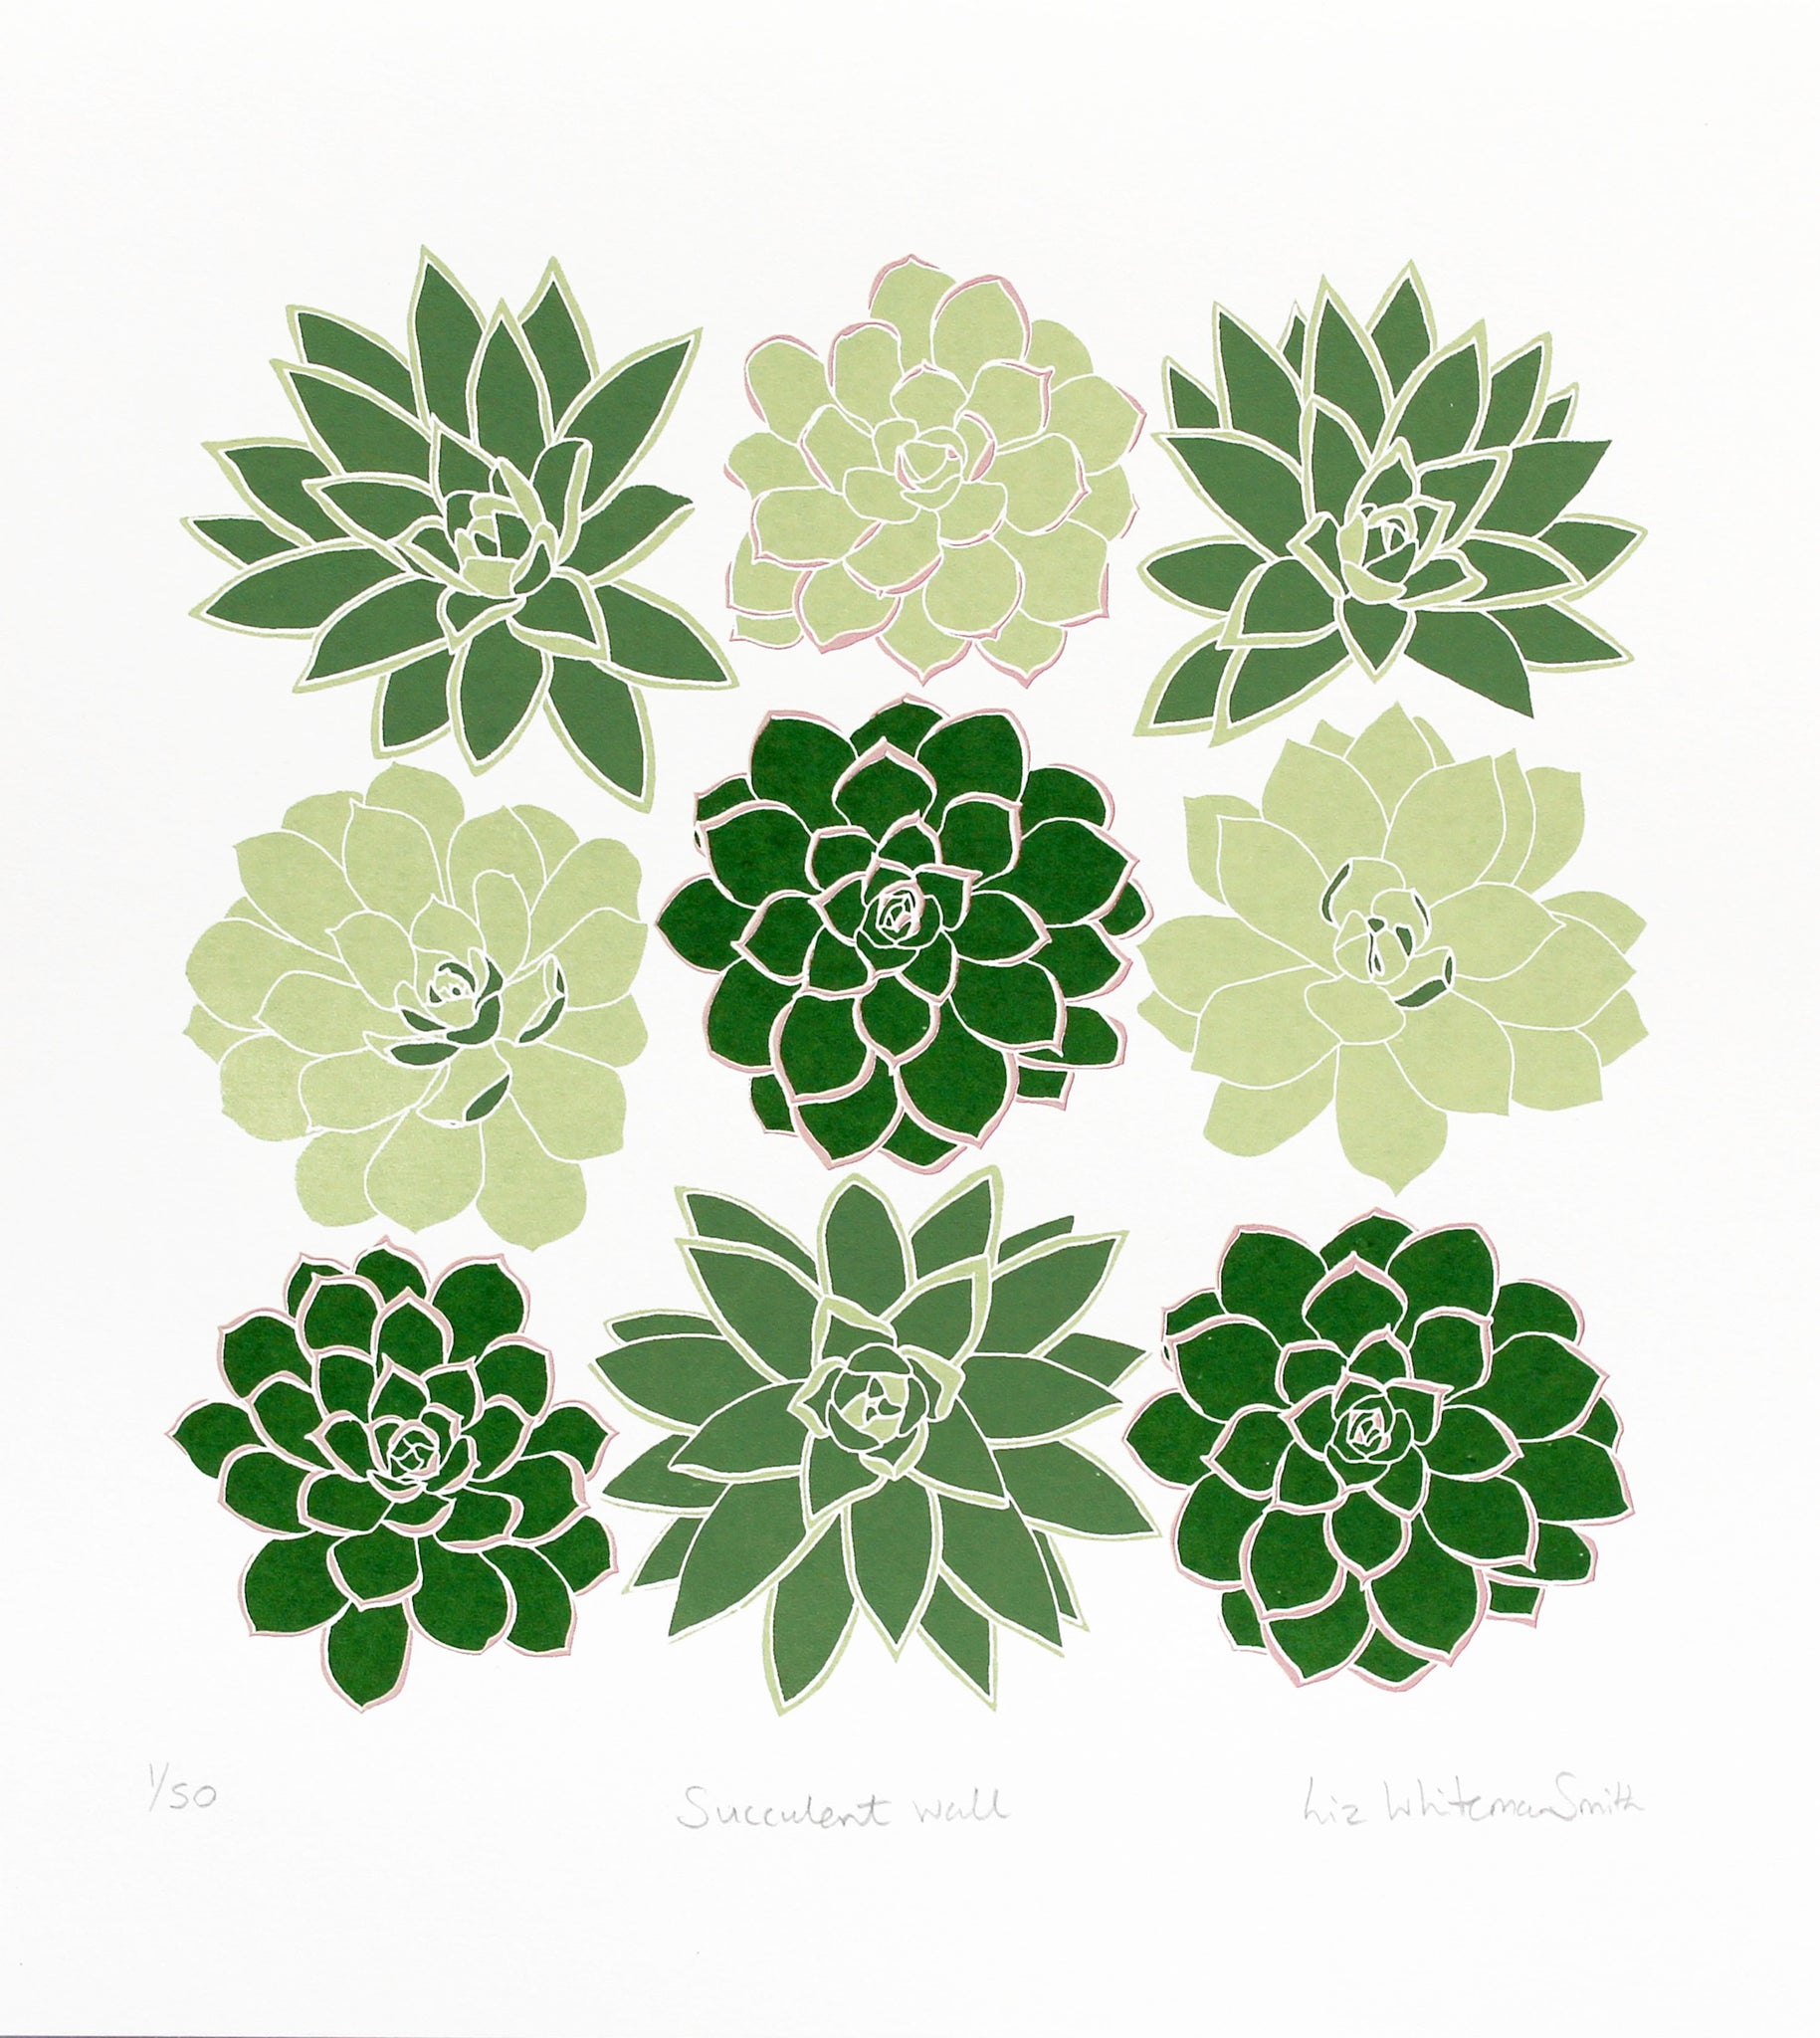 hand pulled limited edition of 50, screen print of a group of nine succulents, shades of green, cacti